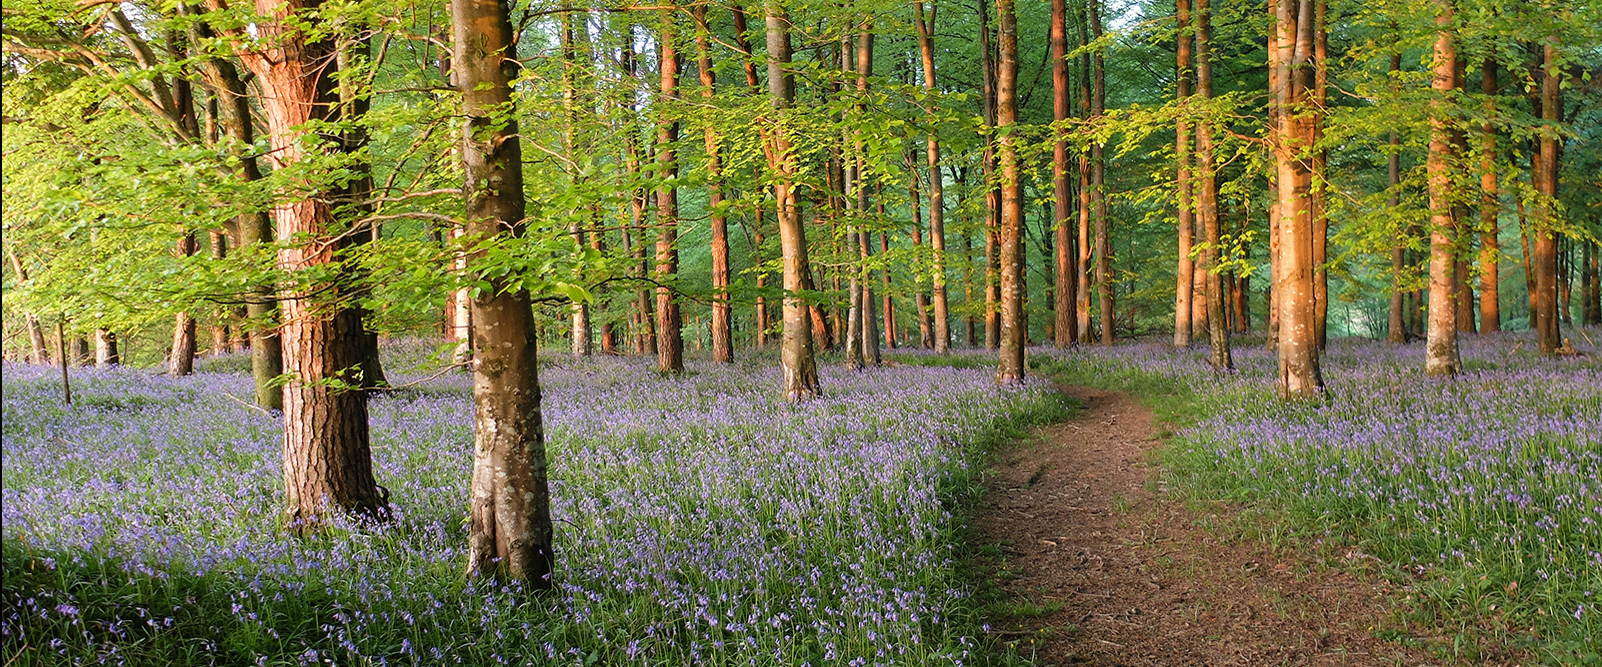 Bluebell wood in Devon